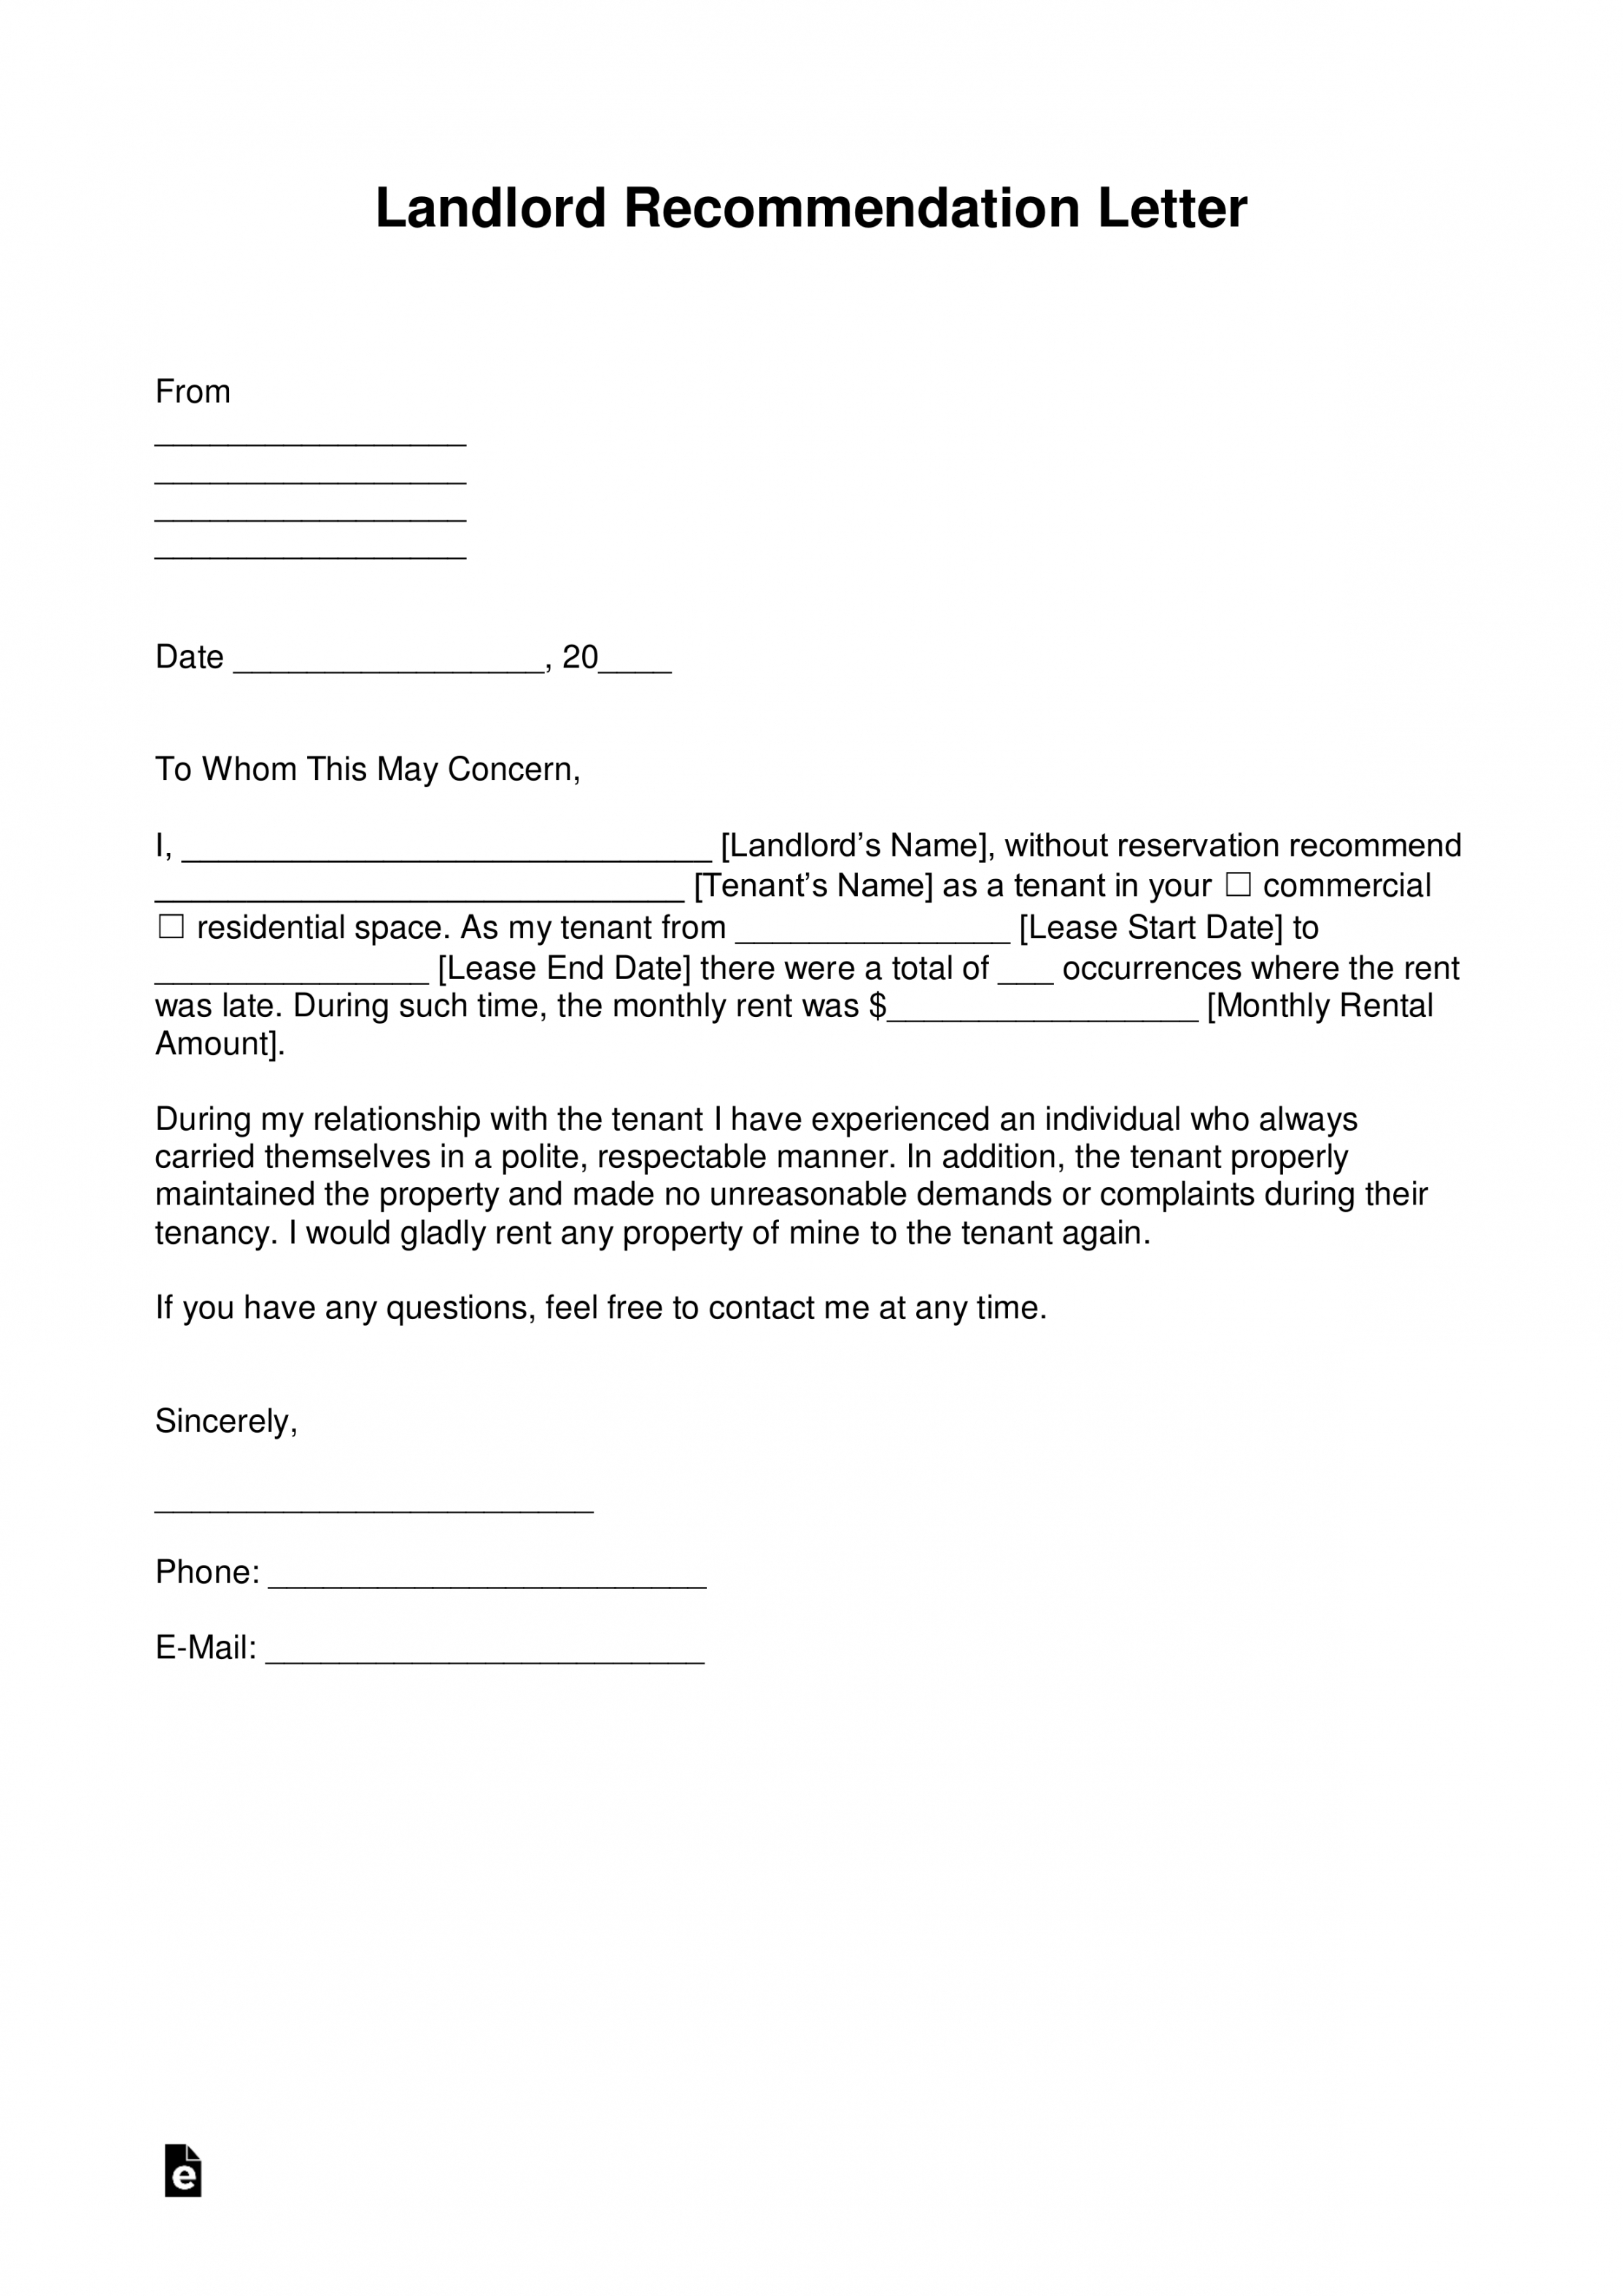 editable free landlord recommendation letter for a tenant  with notice to landlord template sample